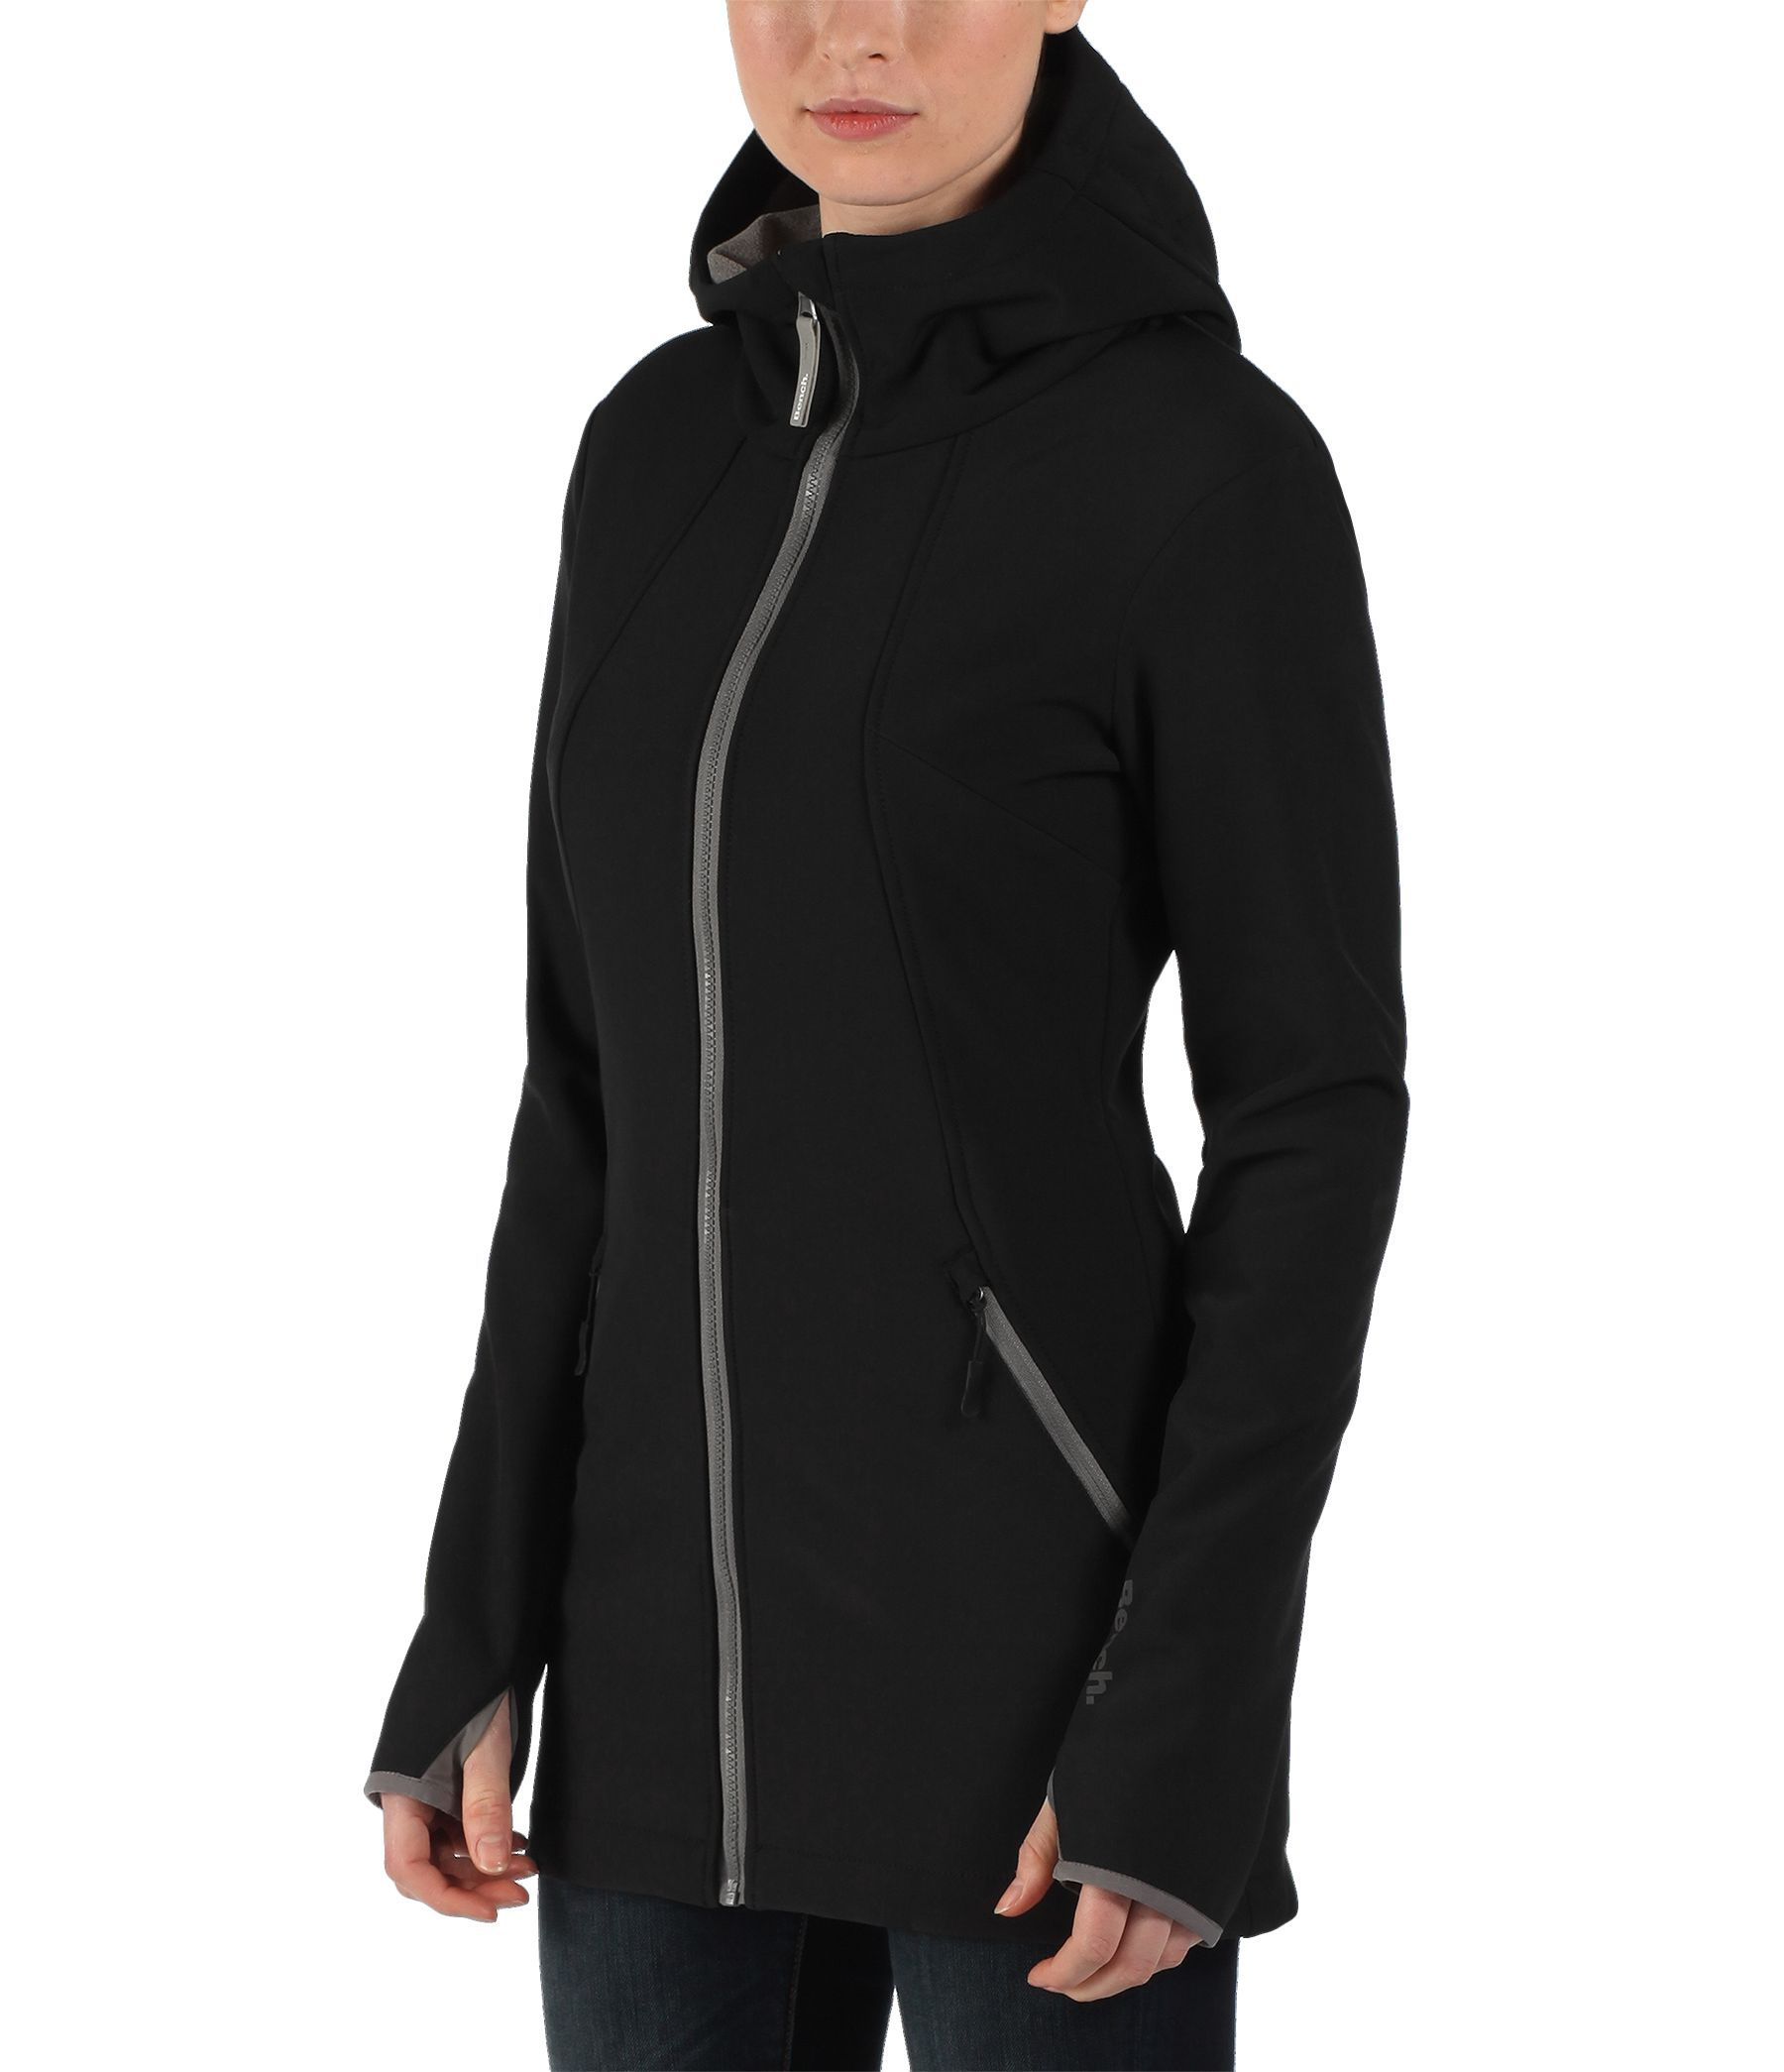 Bench Denney Hooded Softshell Jacket In Black Lyst: bench jacket